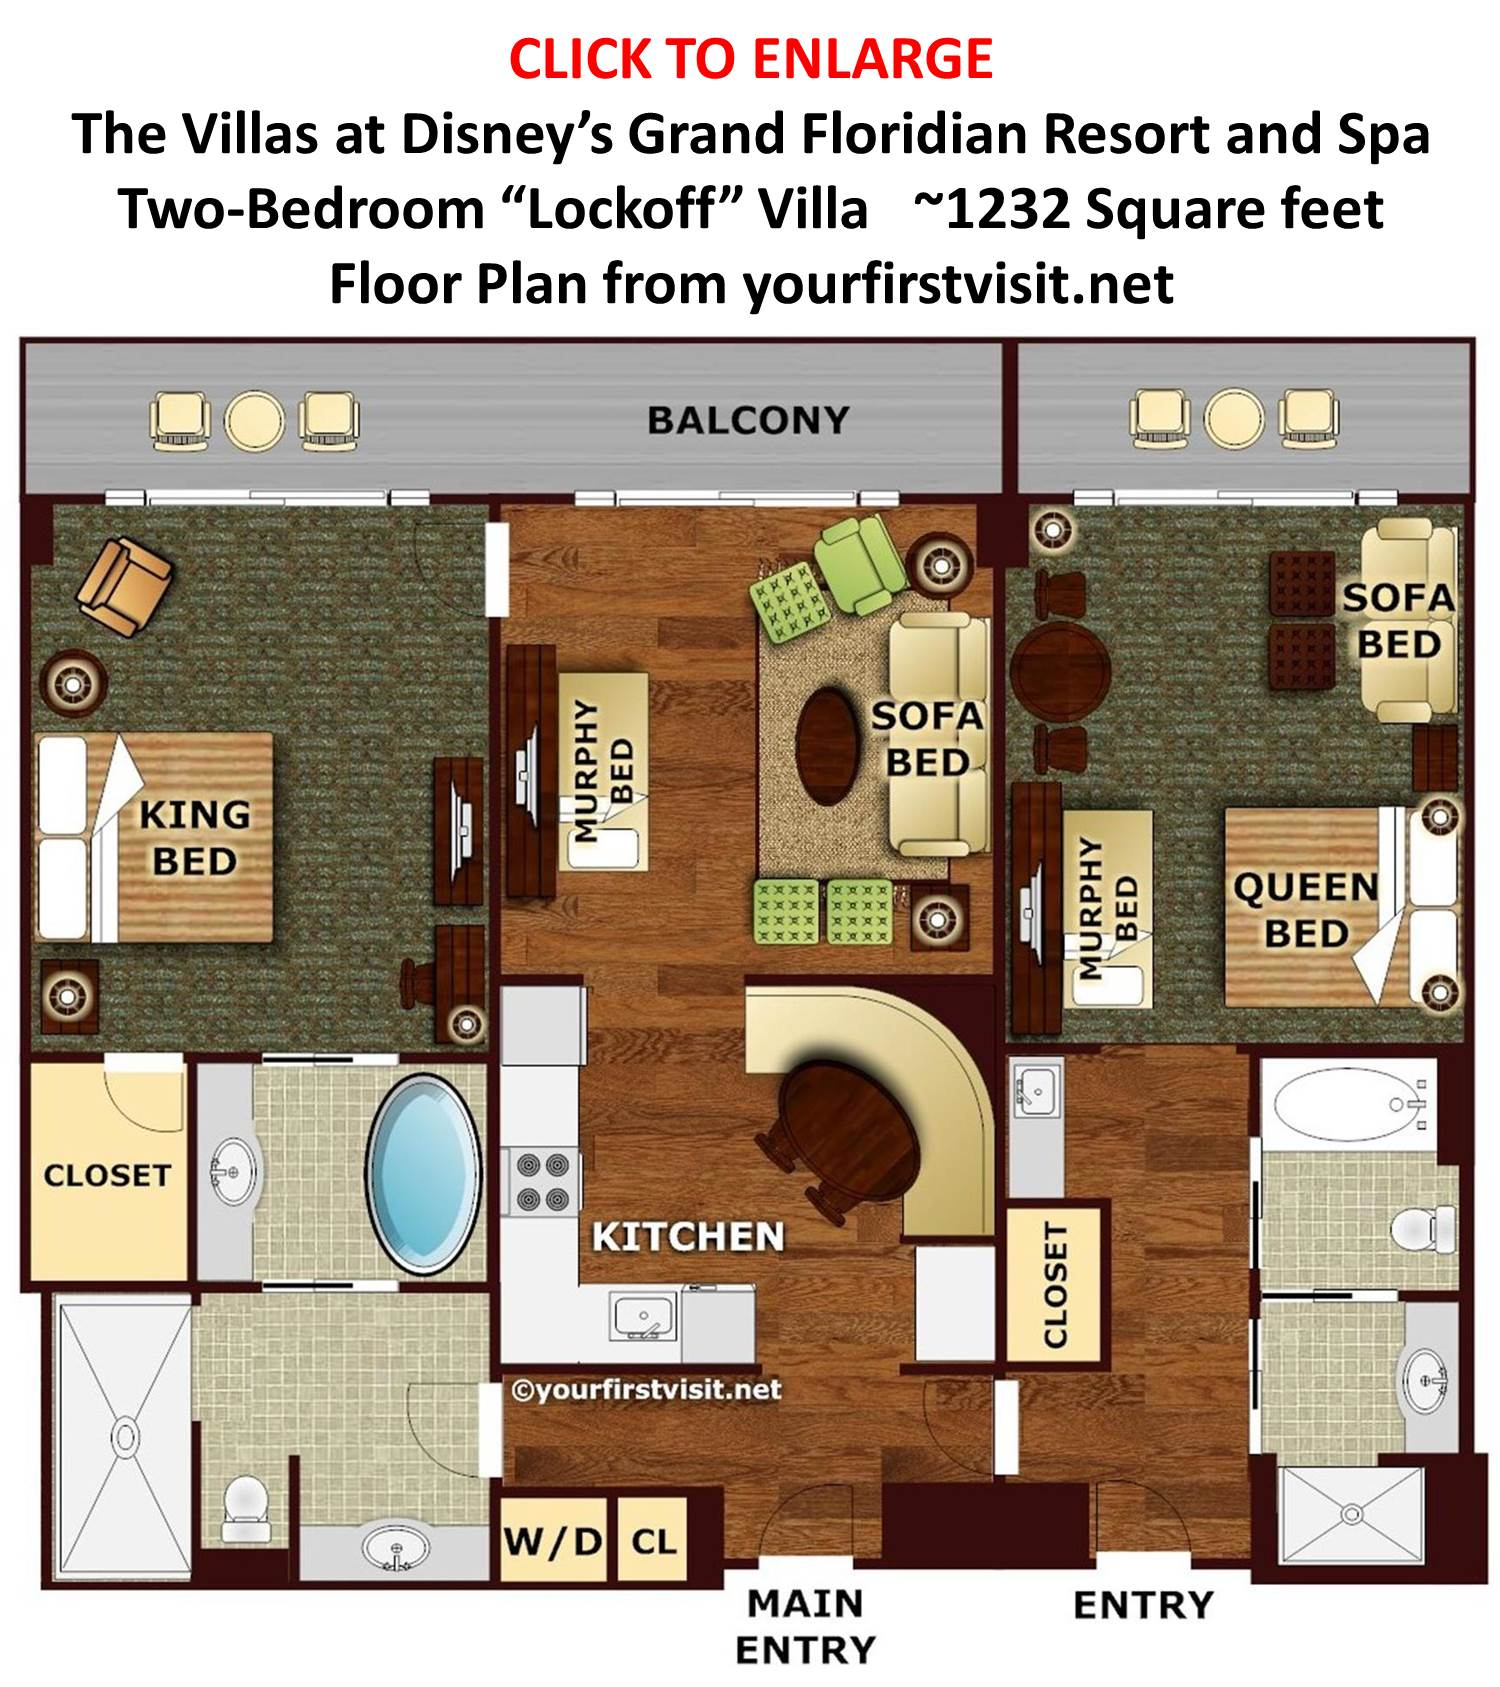 Theming And Accommodations At The Villas Disneys Grand